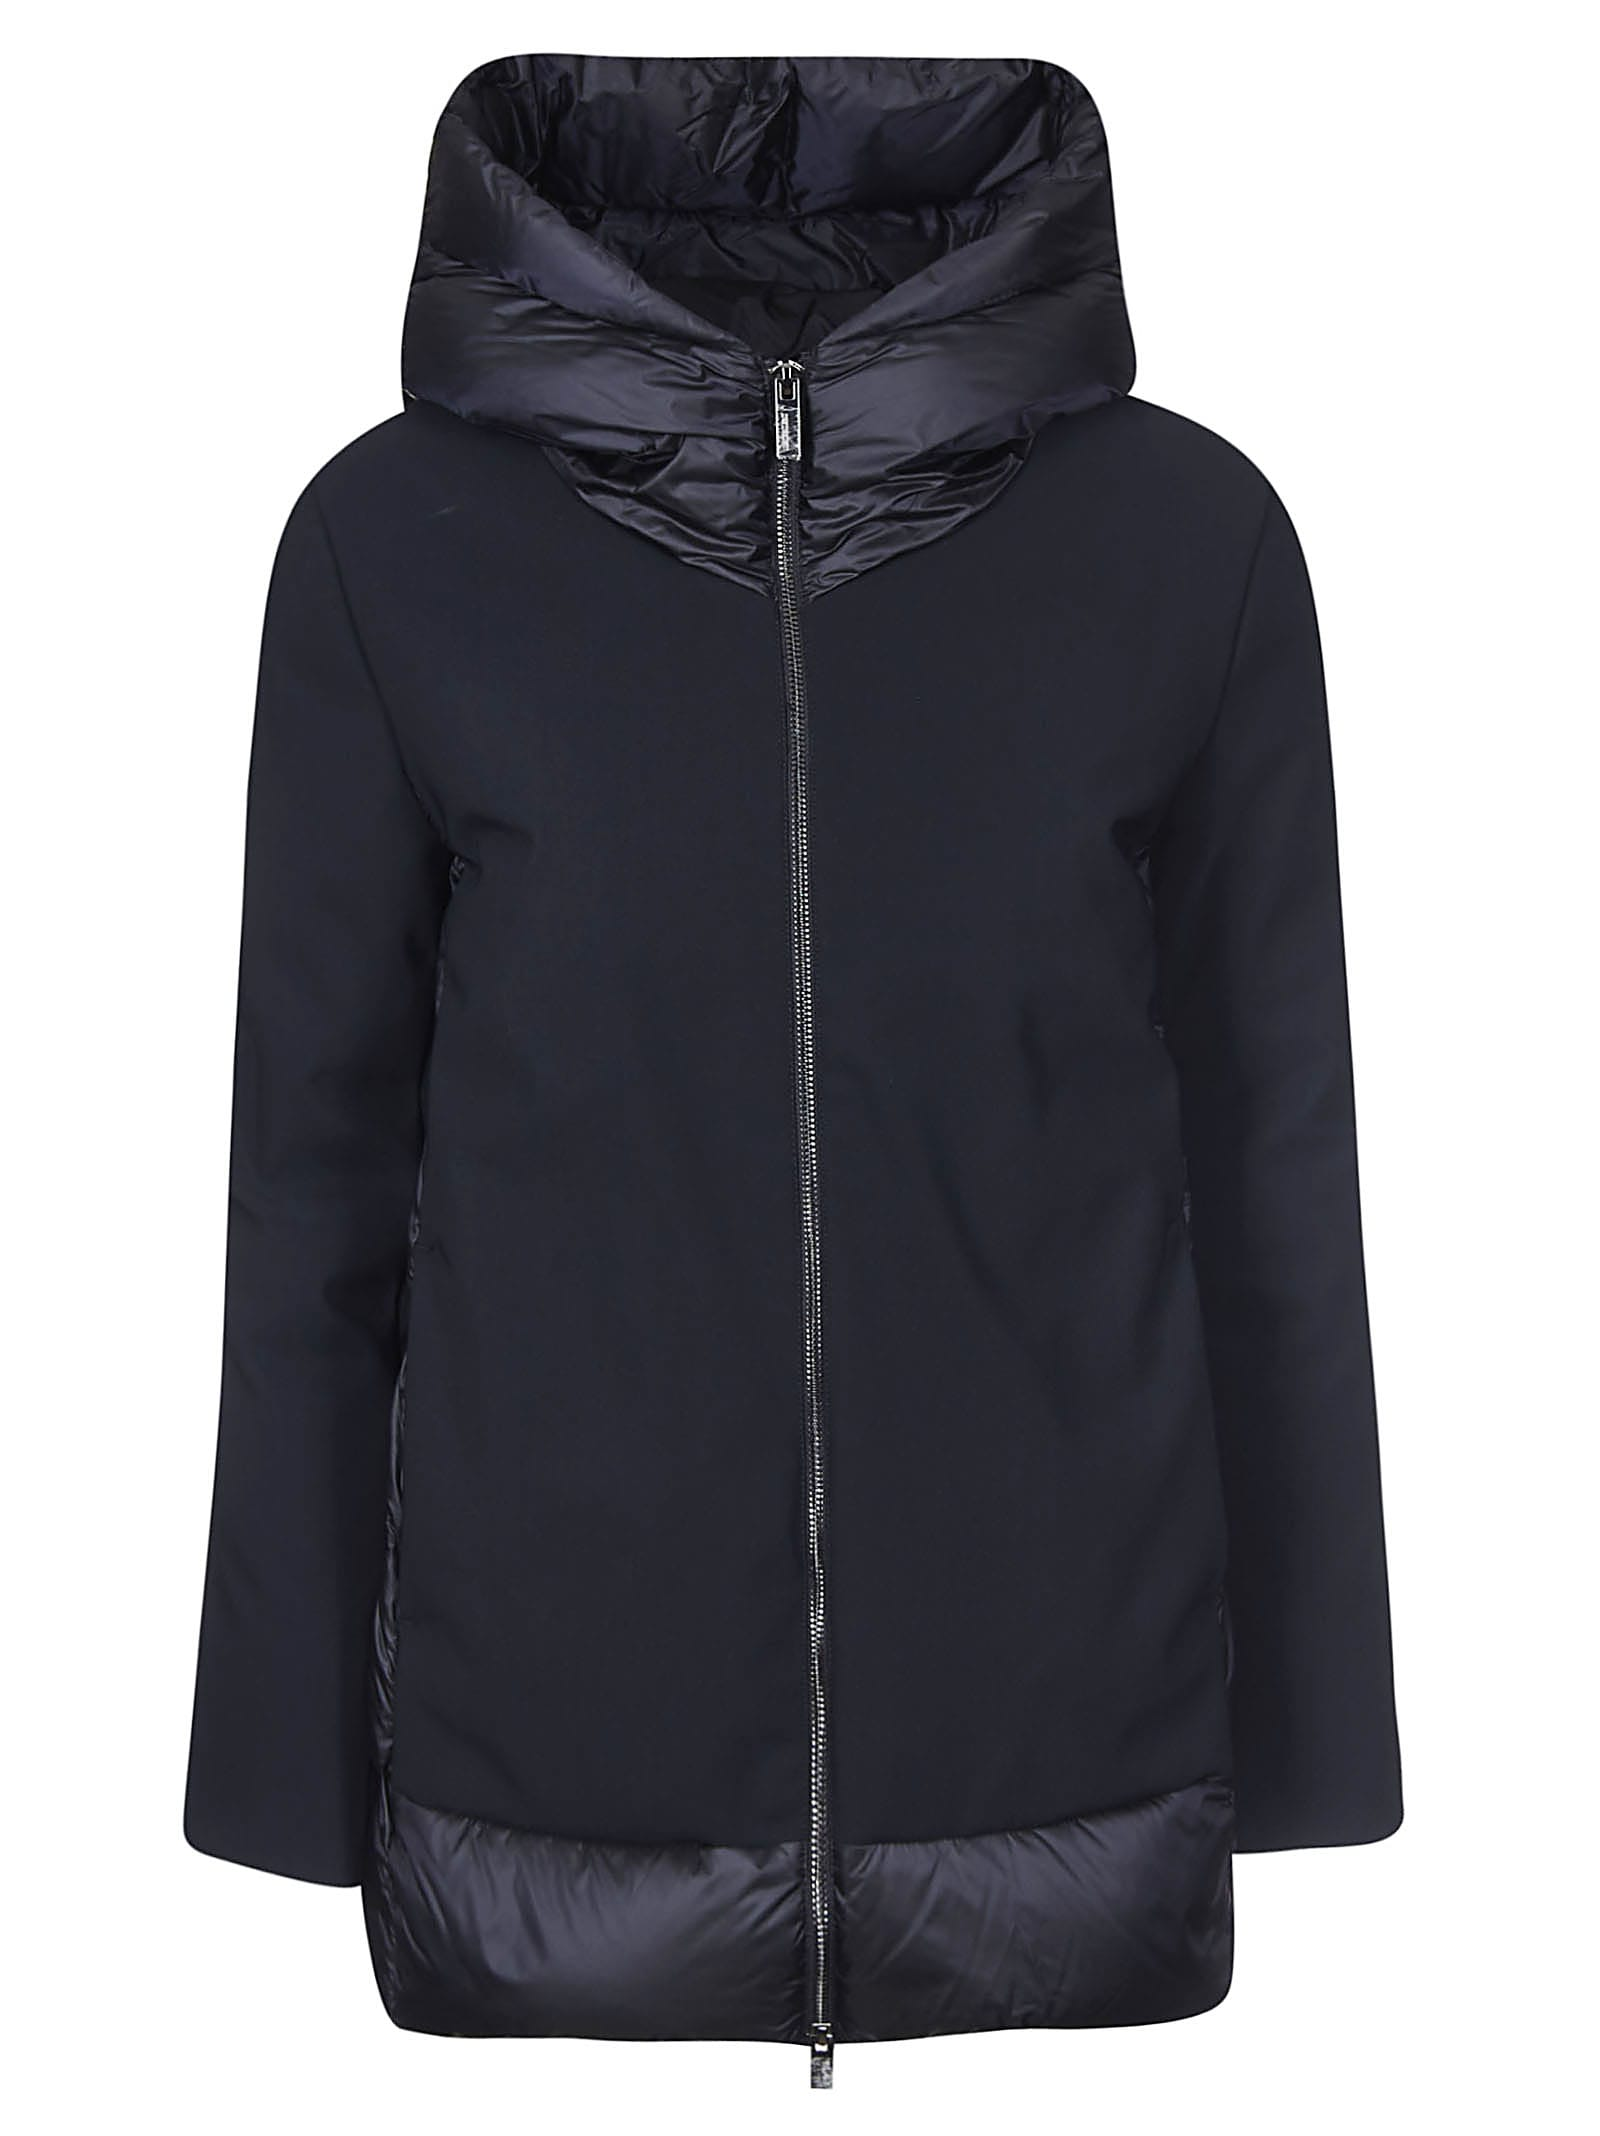 RRD – Roberto Ricci Design Back Padded Detail Hooded Jacket